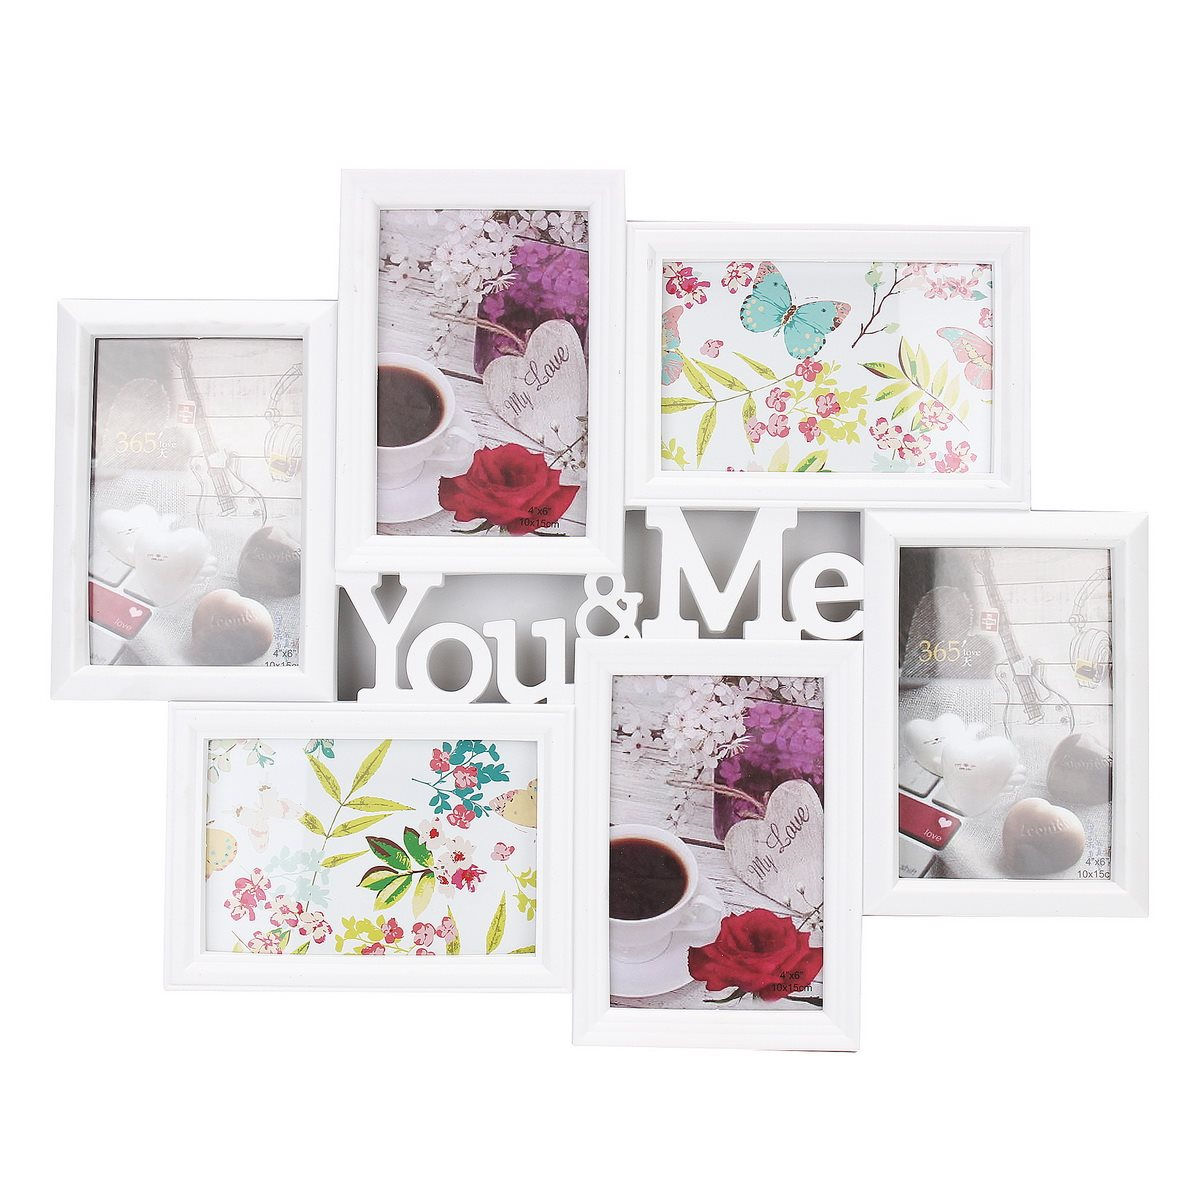 You&Me Pictures Display Photo Frame 6 Images Wall Decor Collage Gift 6 Inch Photo Love Theme Frame Home Art Wall Mural Decor(China (Mainland))